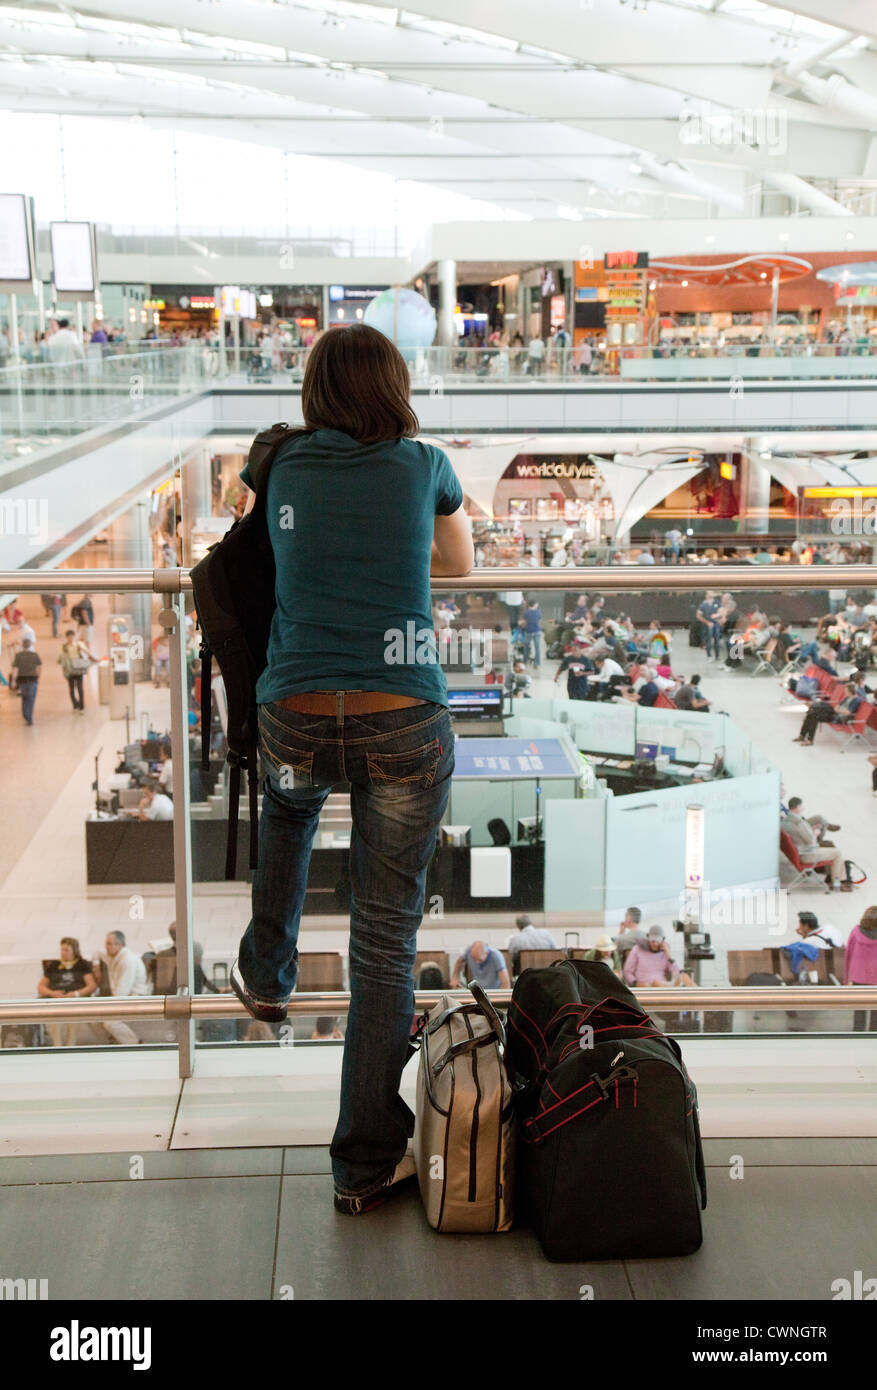 A traveller looking over Terminal 5 departure lounge, Heathrow airport, london UK - Stock Image